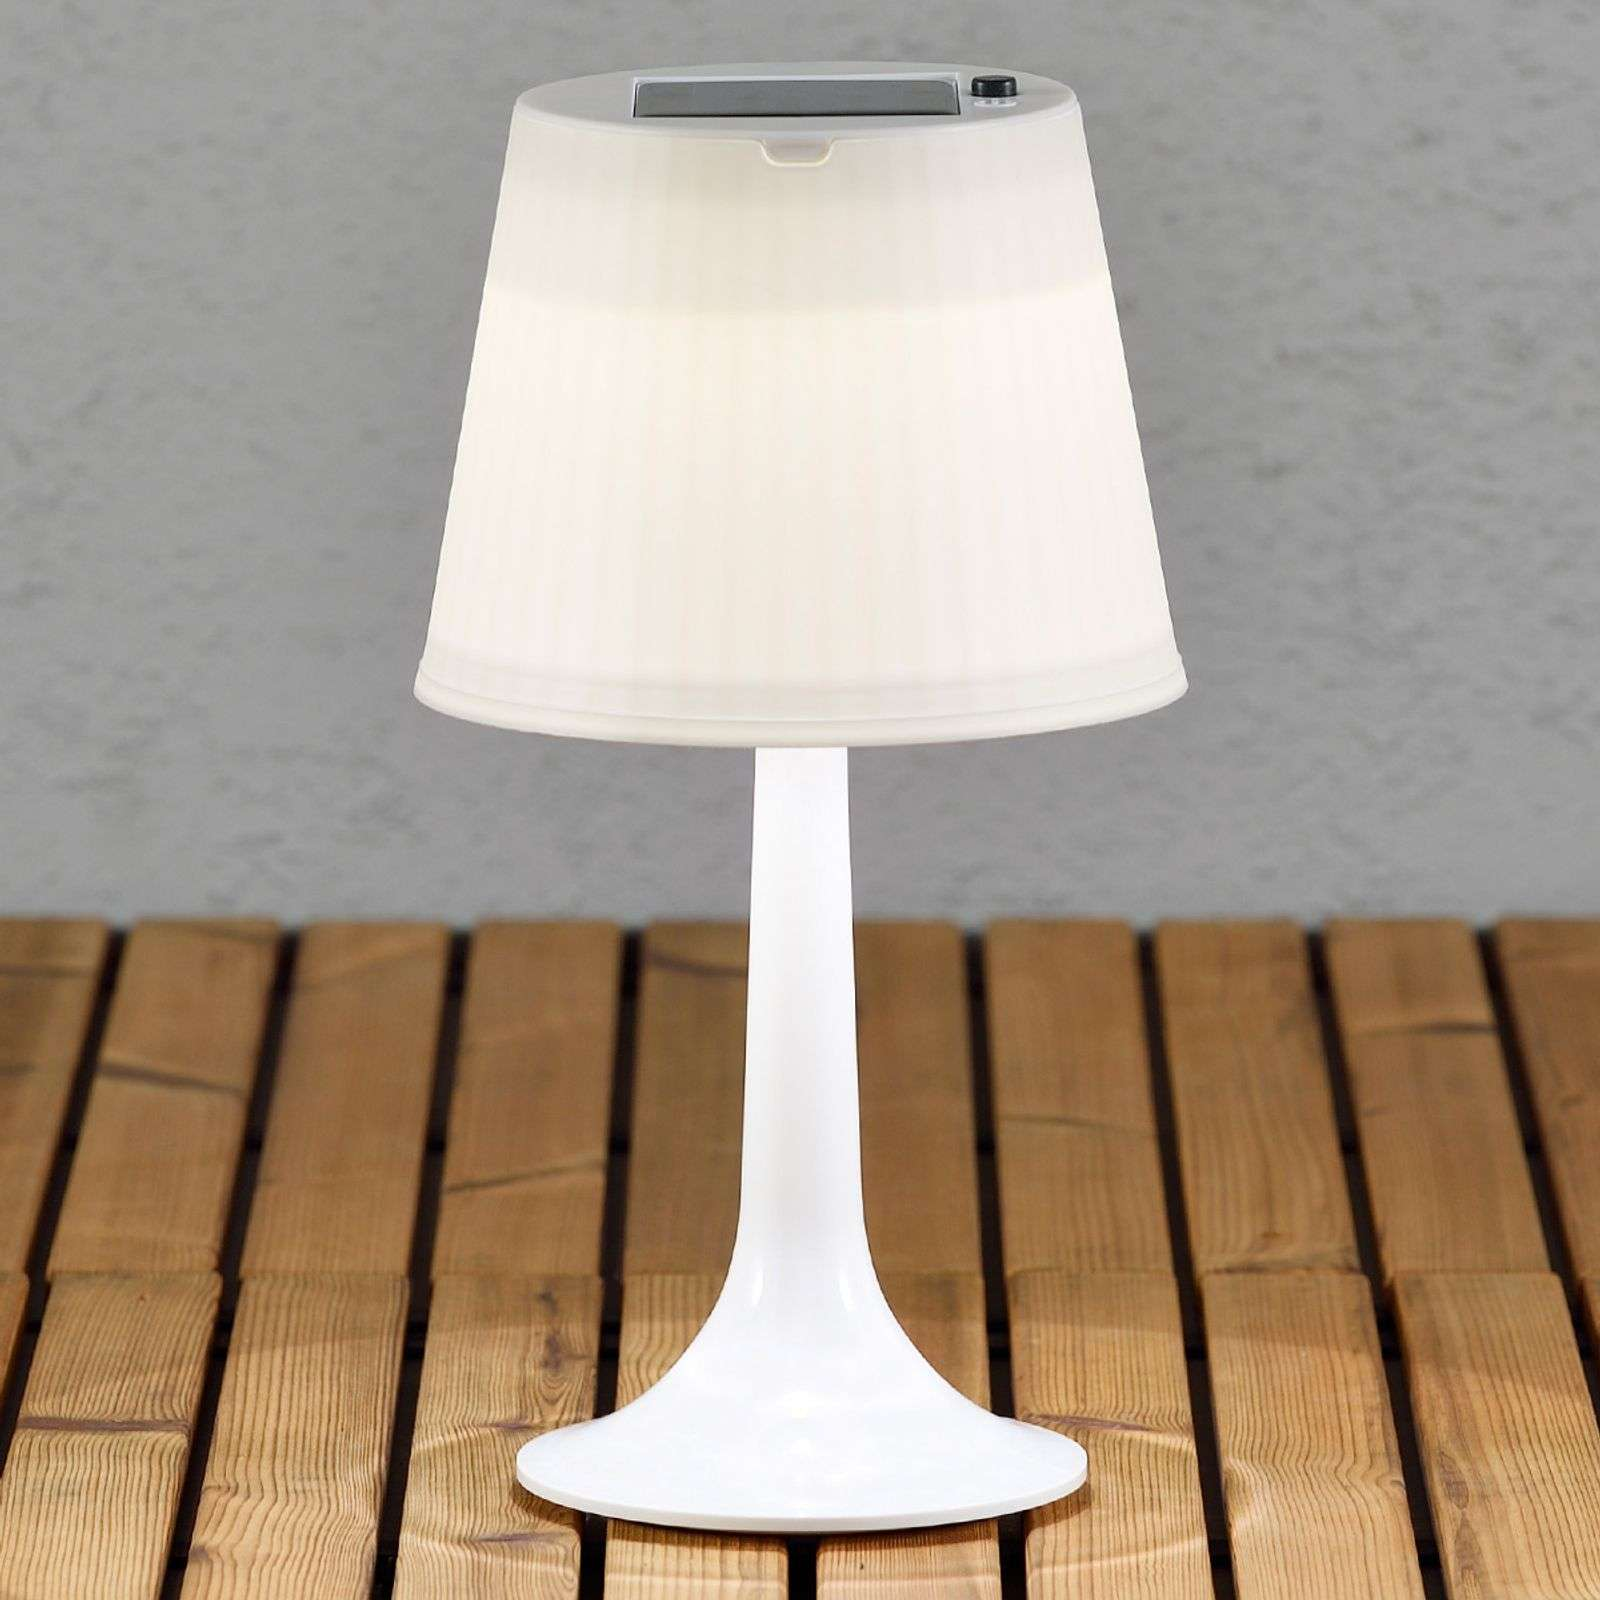 Lampe à poser LED solaire blanche Assisi Sitra